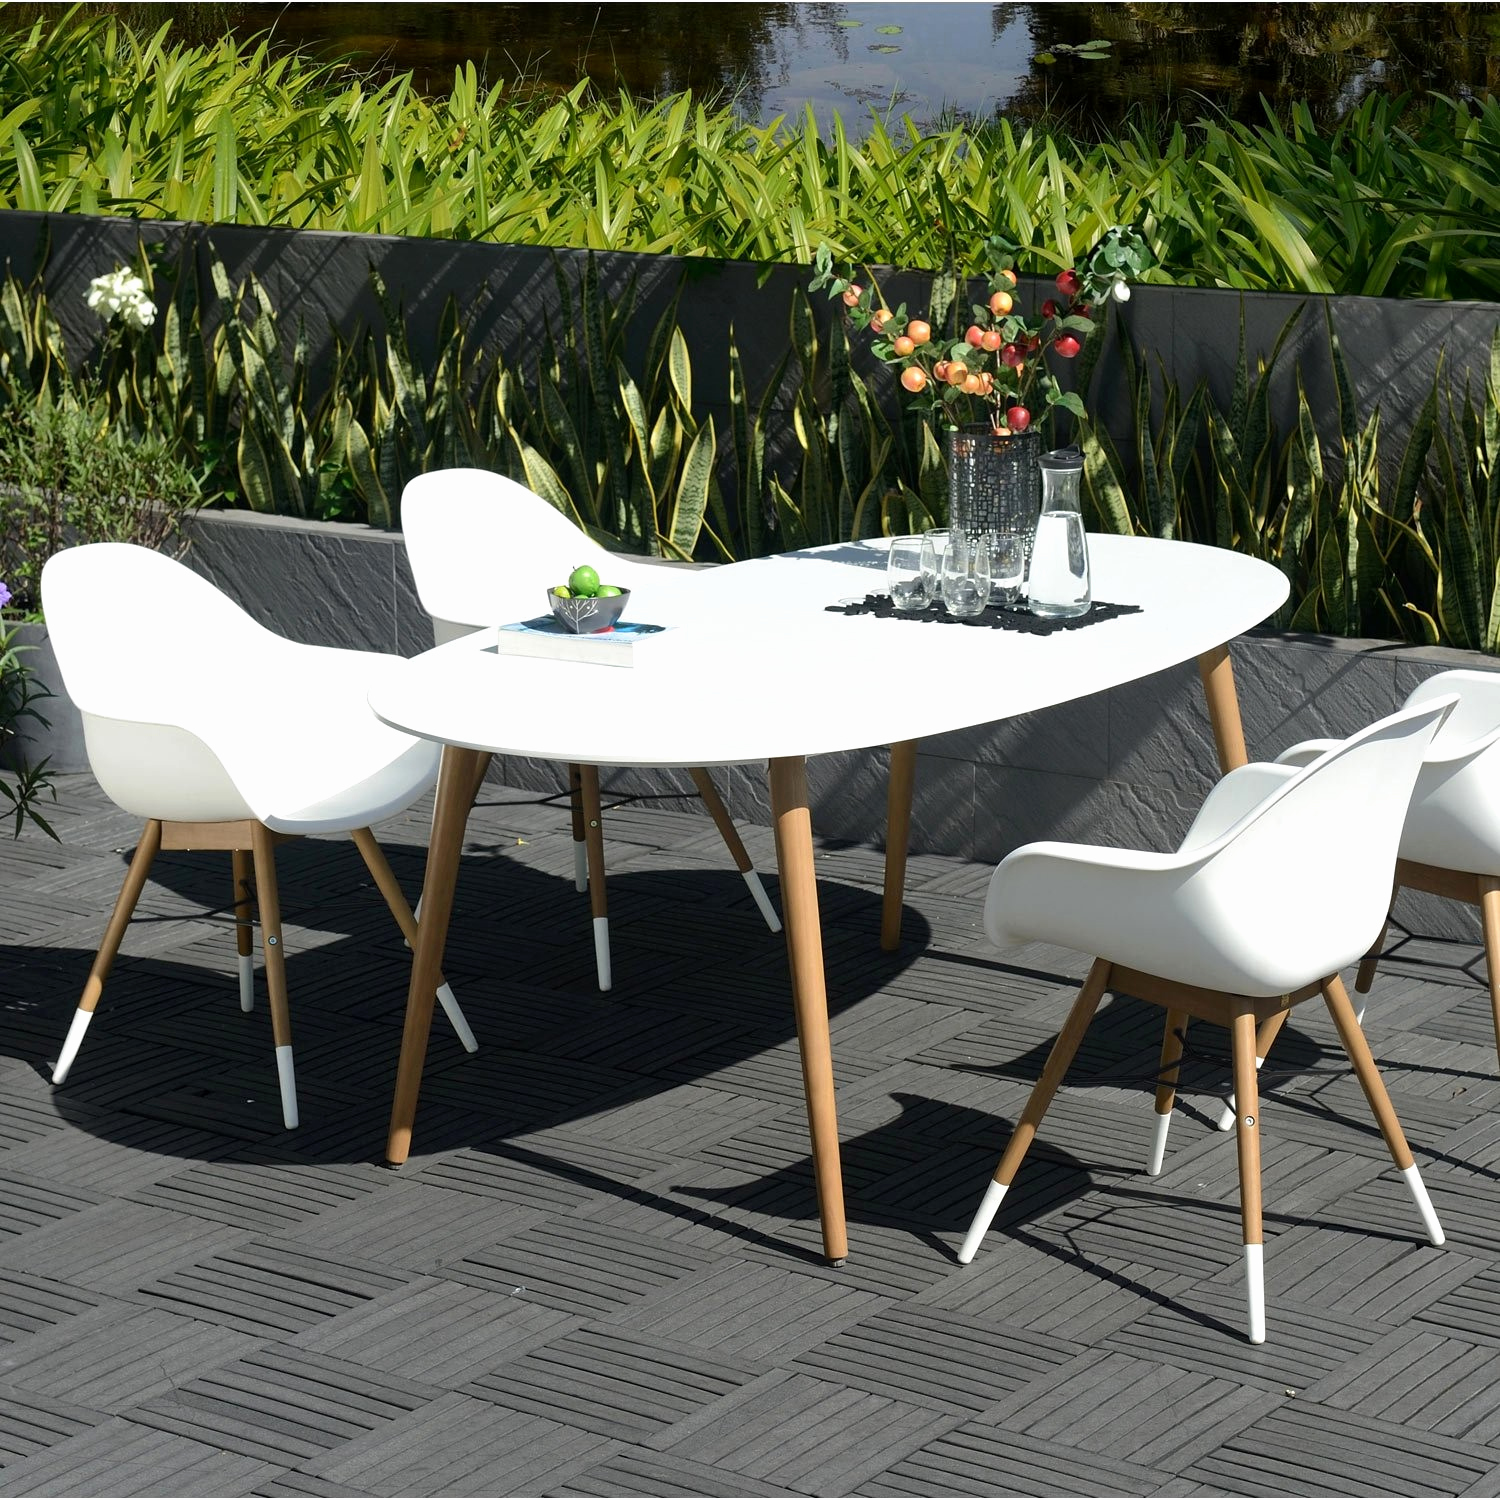 Table Exterieur Resine Élégant Carrelage Terrasse Leroy Merlin Of 36 Charmant Table Exterieur Resine